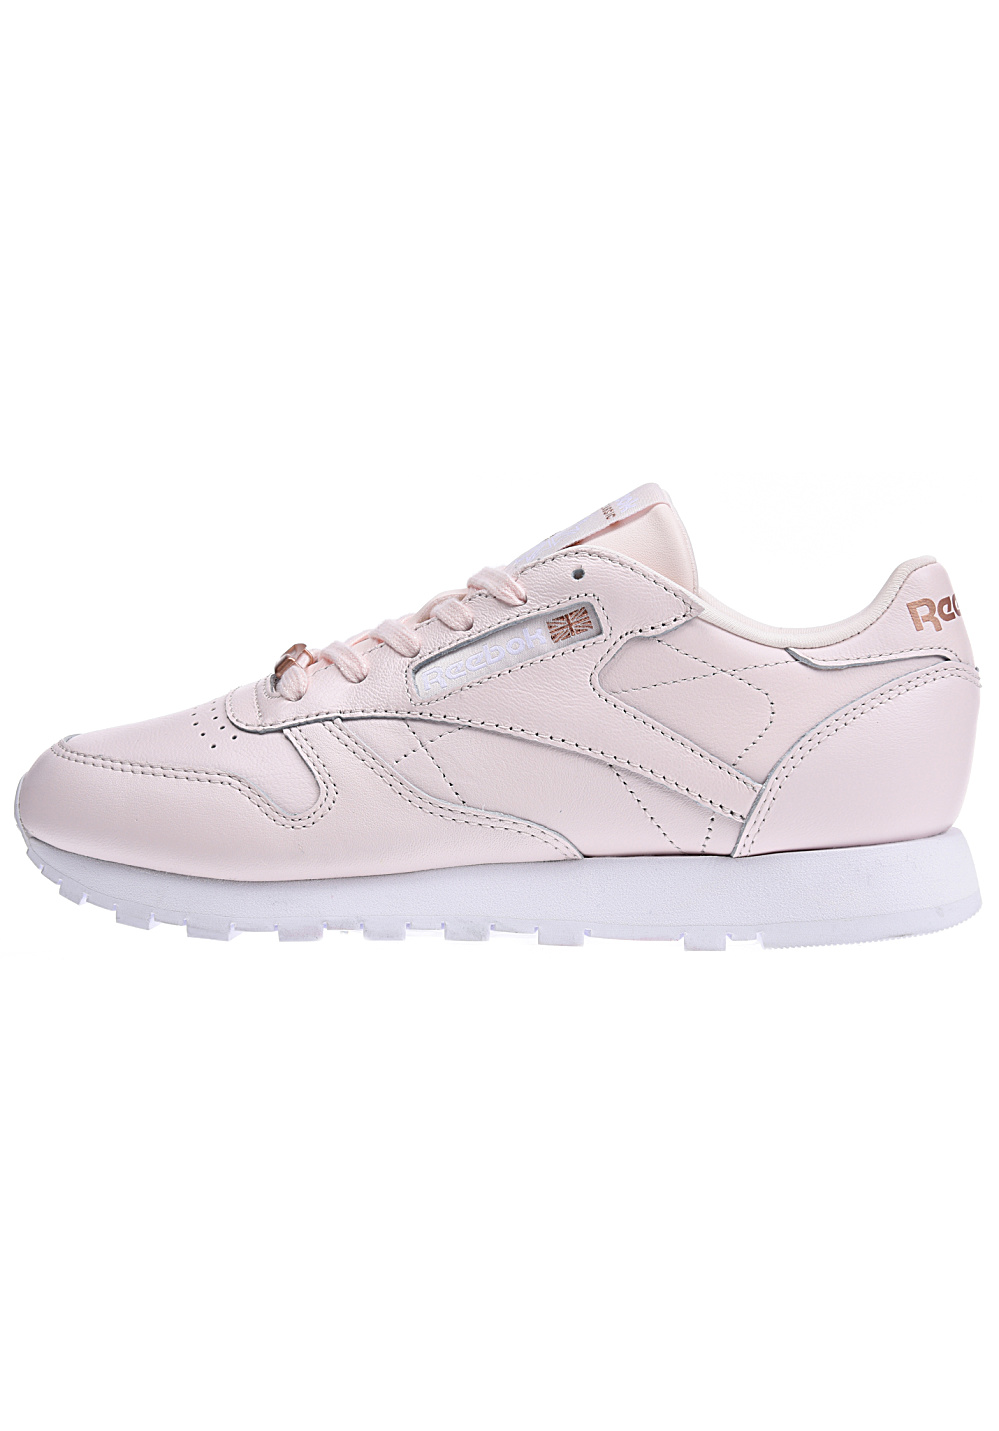 8bb4b790fb3 Reebok Classic Lthr Hw - Sneakers for Women - Pink - Planet Sports